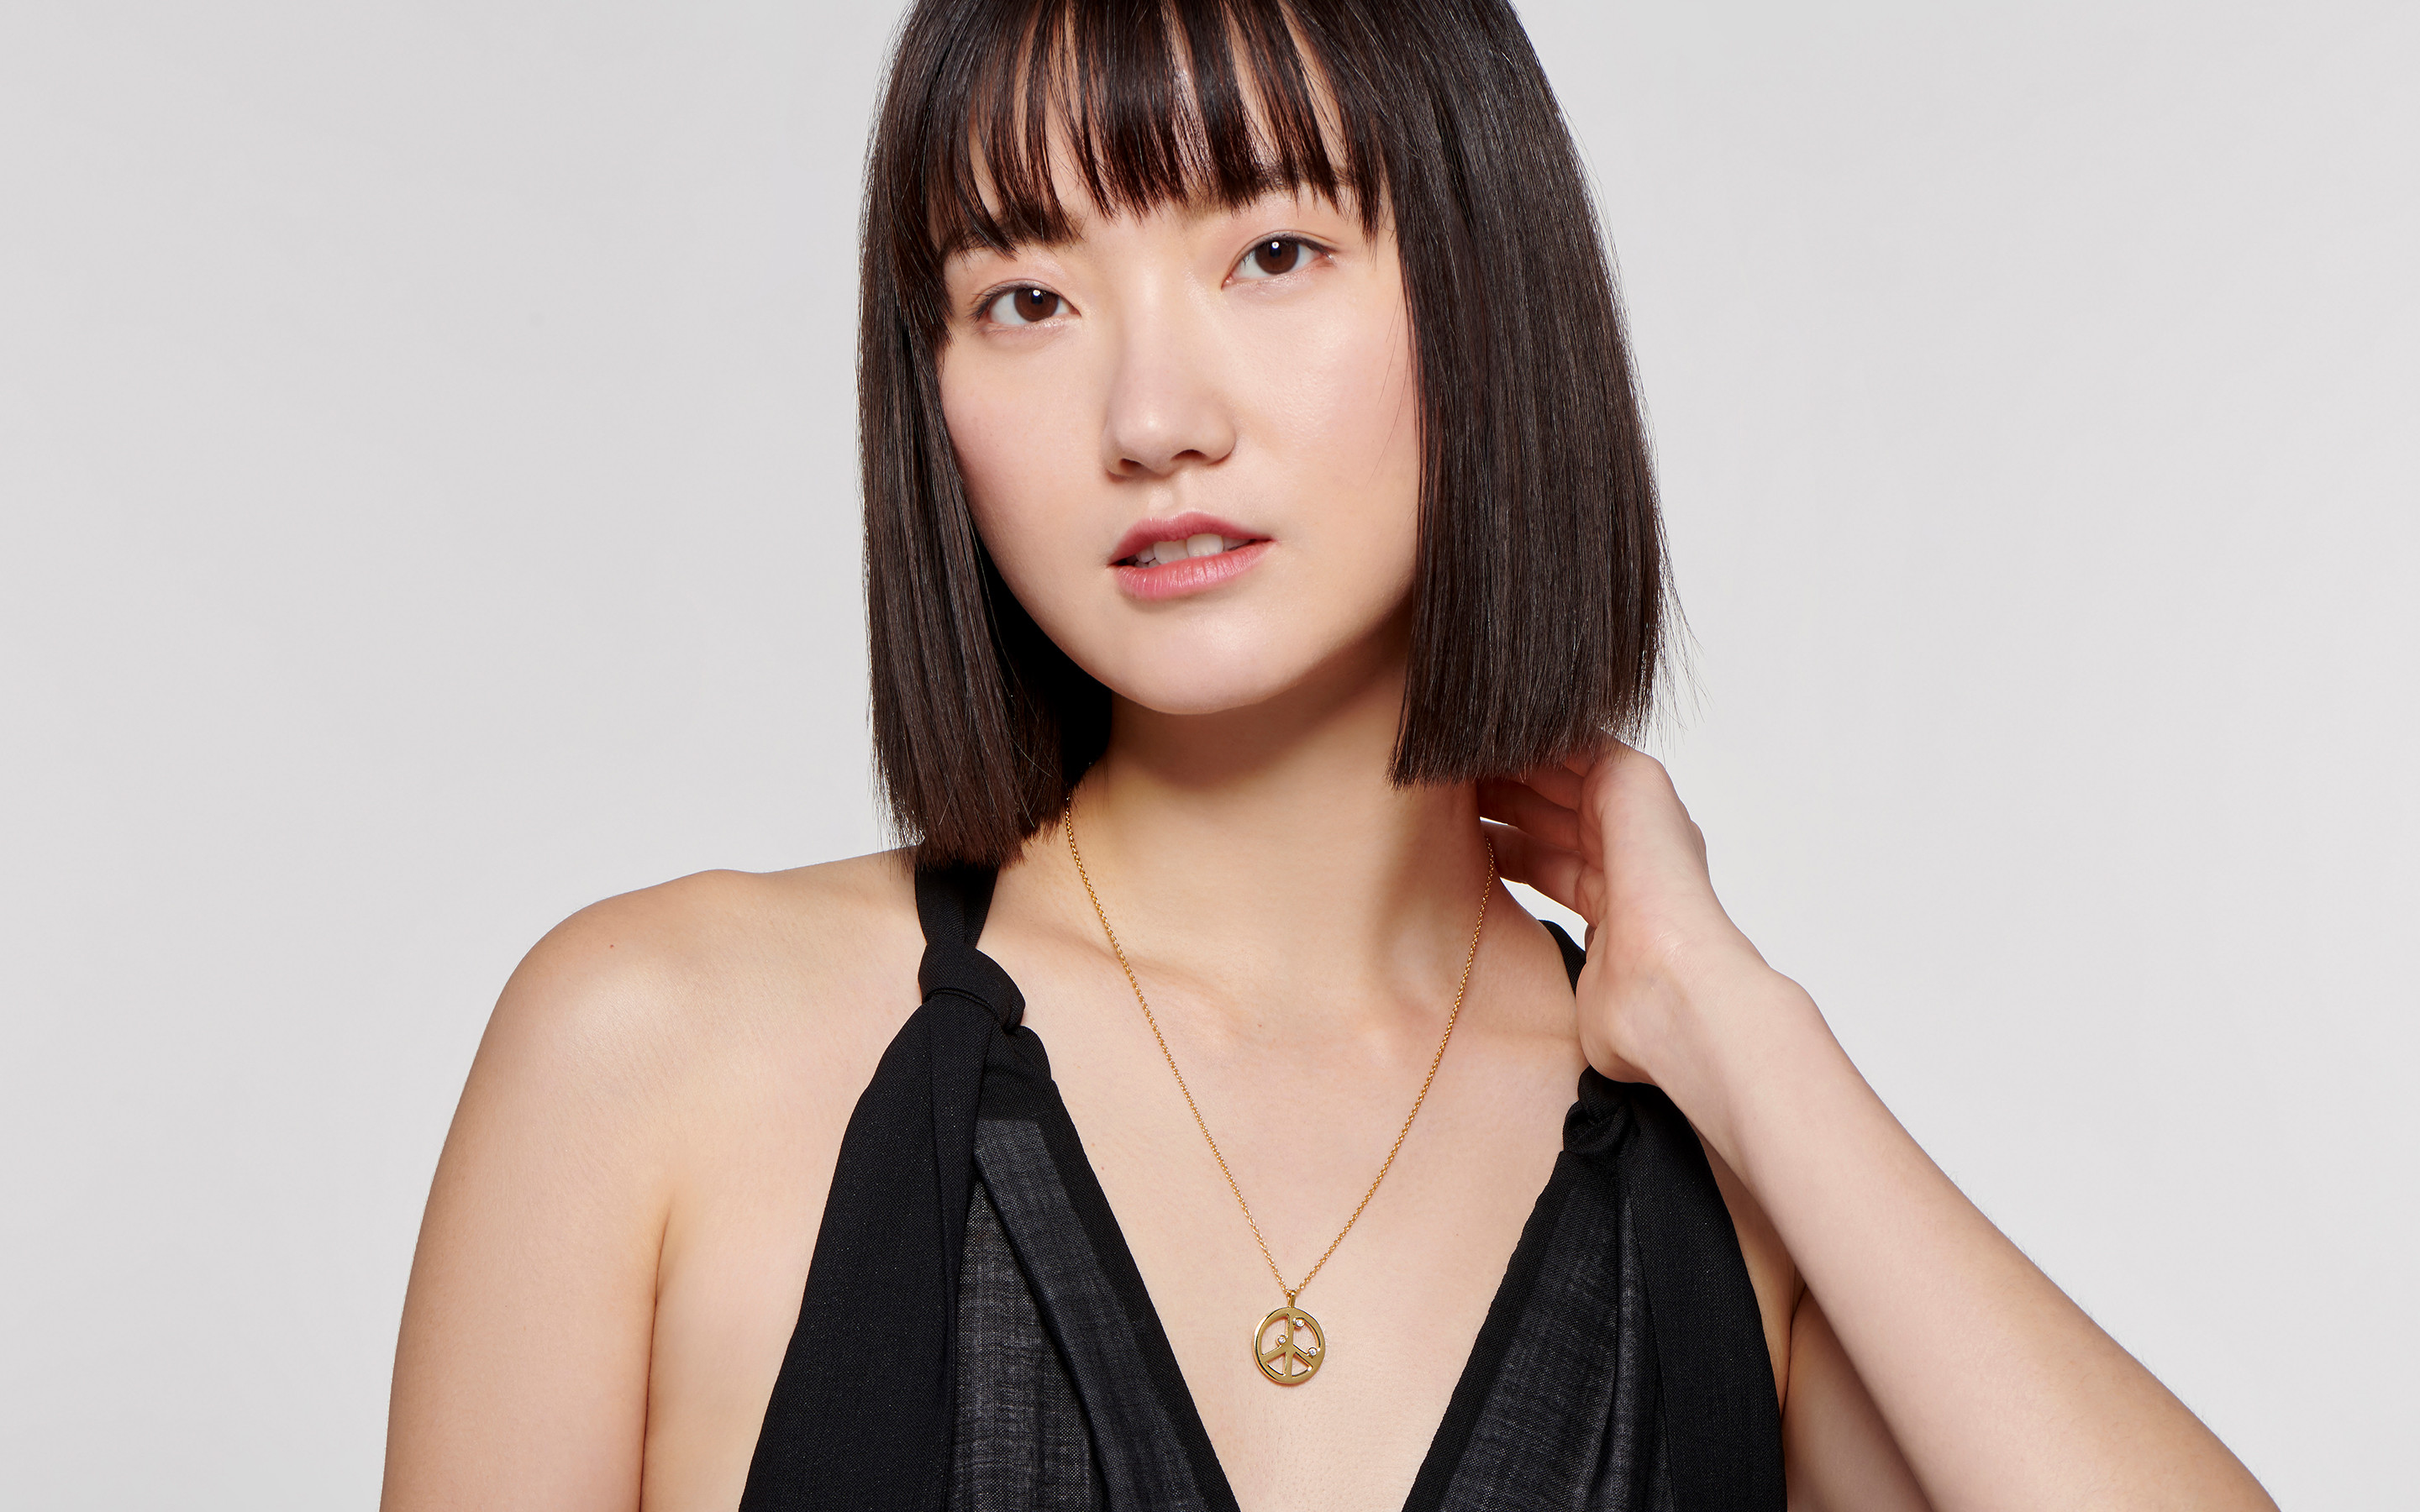 Asian model with bob cut